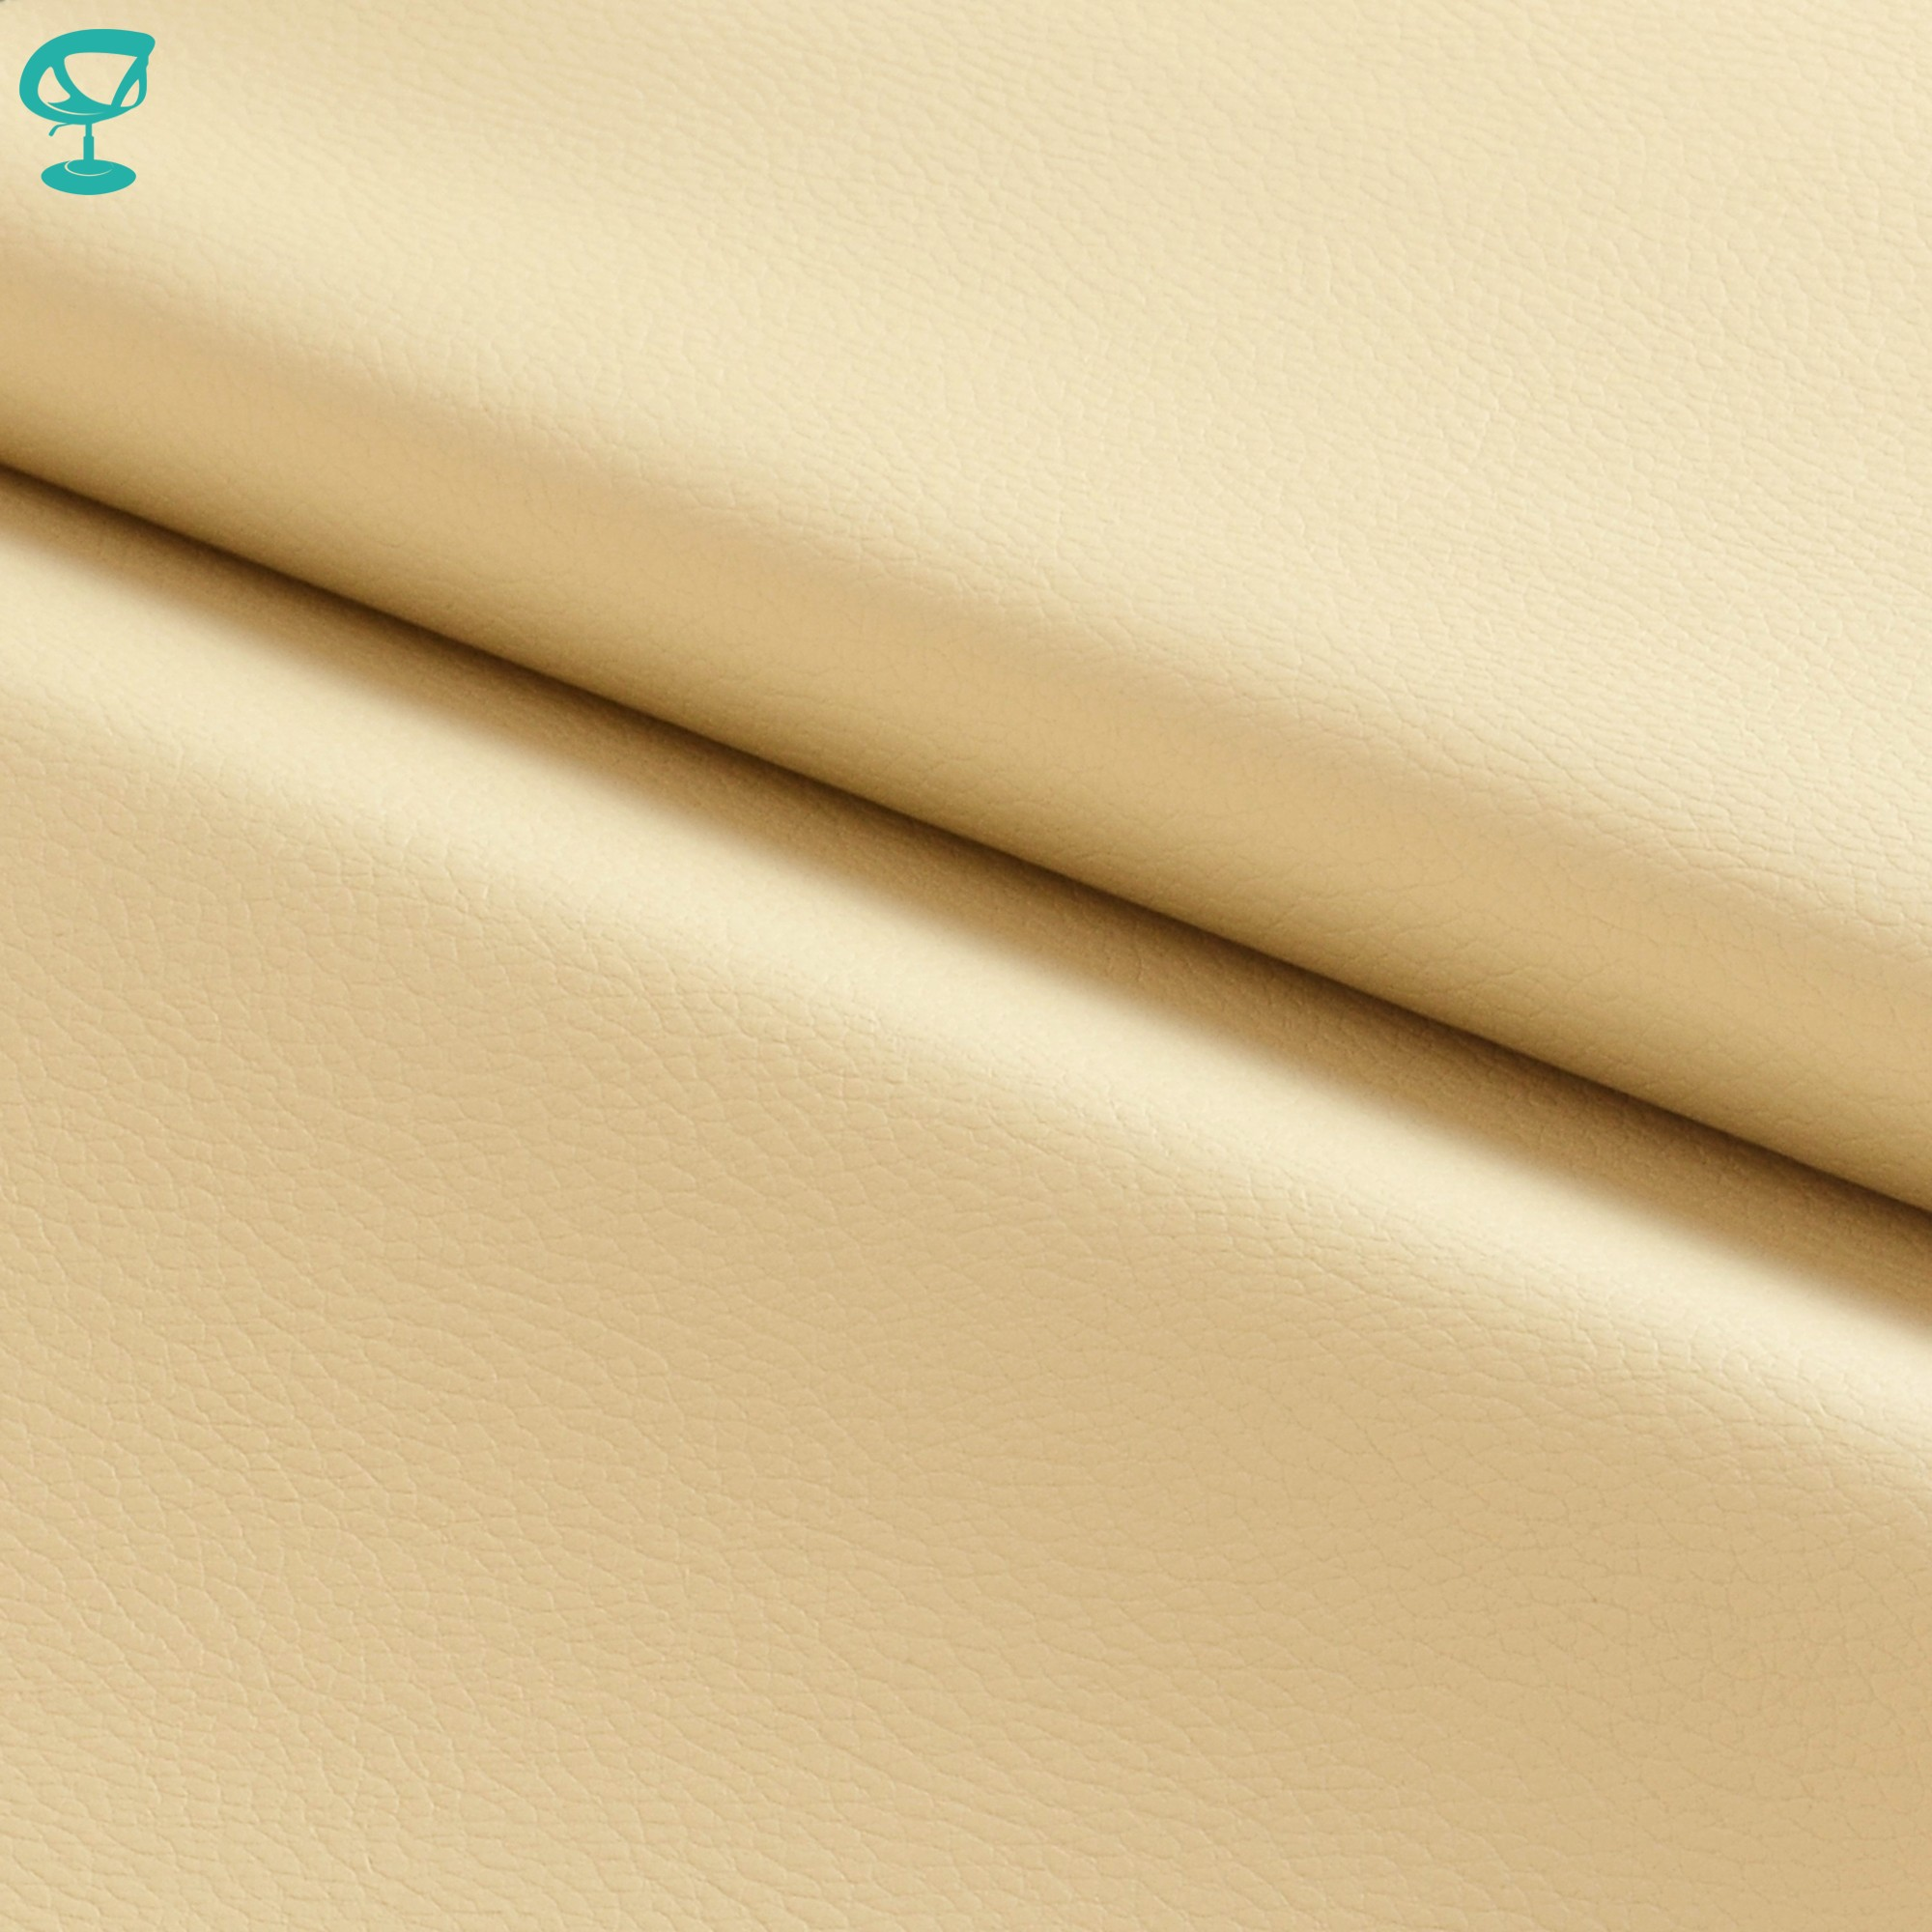 95660 Barneo Pu003 Leather PU Furniture обивочный Material For мебельного Production Necking Furniture Chairs Sofas